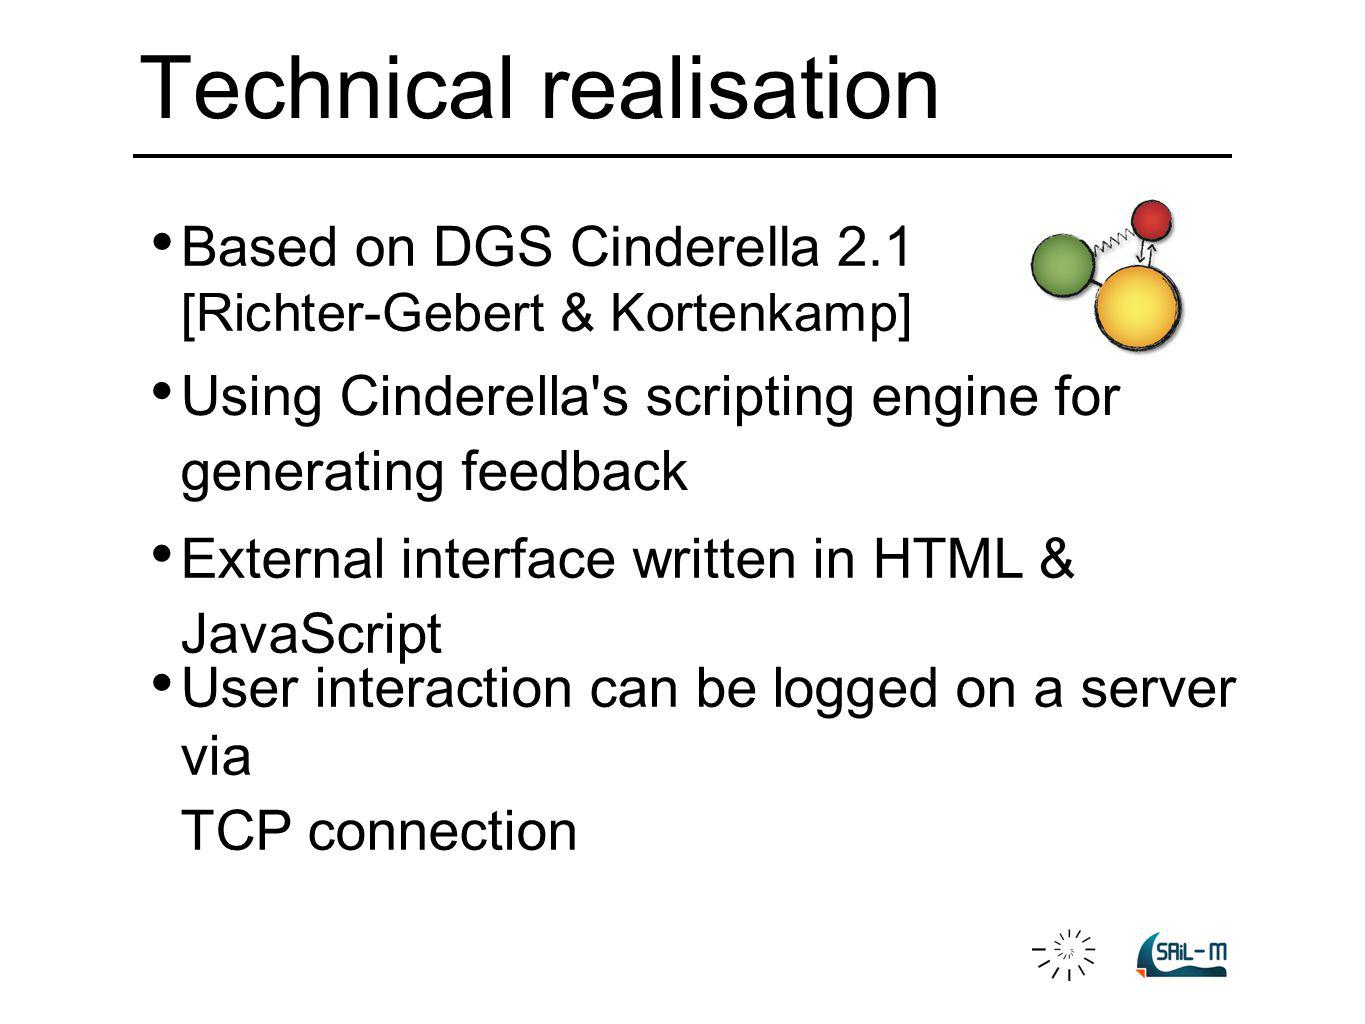 Based on DGS Cinderella 2.1 [Richter-Gebert & Kortenkamp] External interface written in HTML & JavaScript Using Cinderella's scripting engine for gene